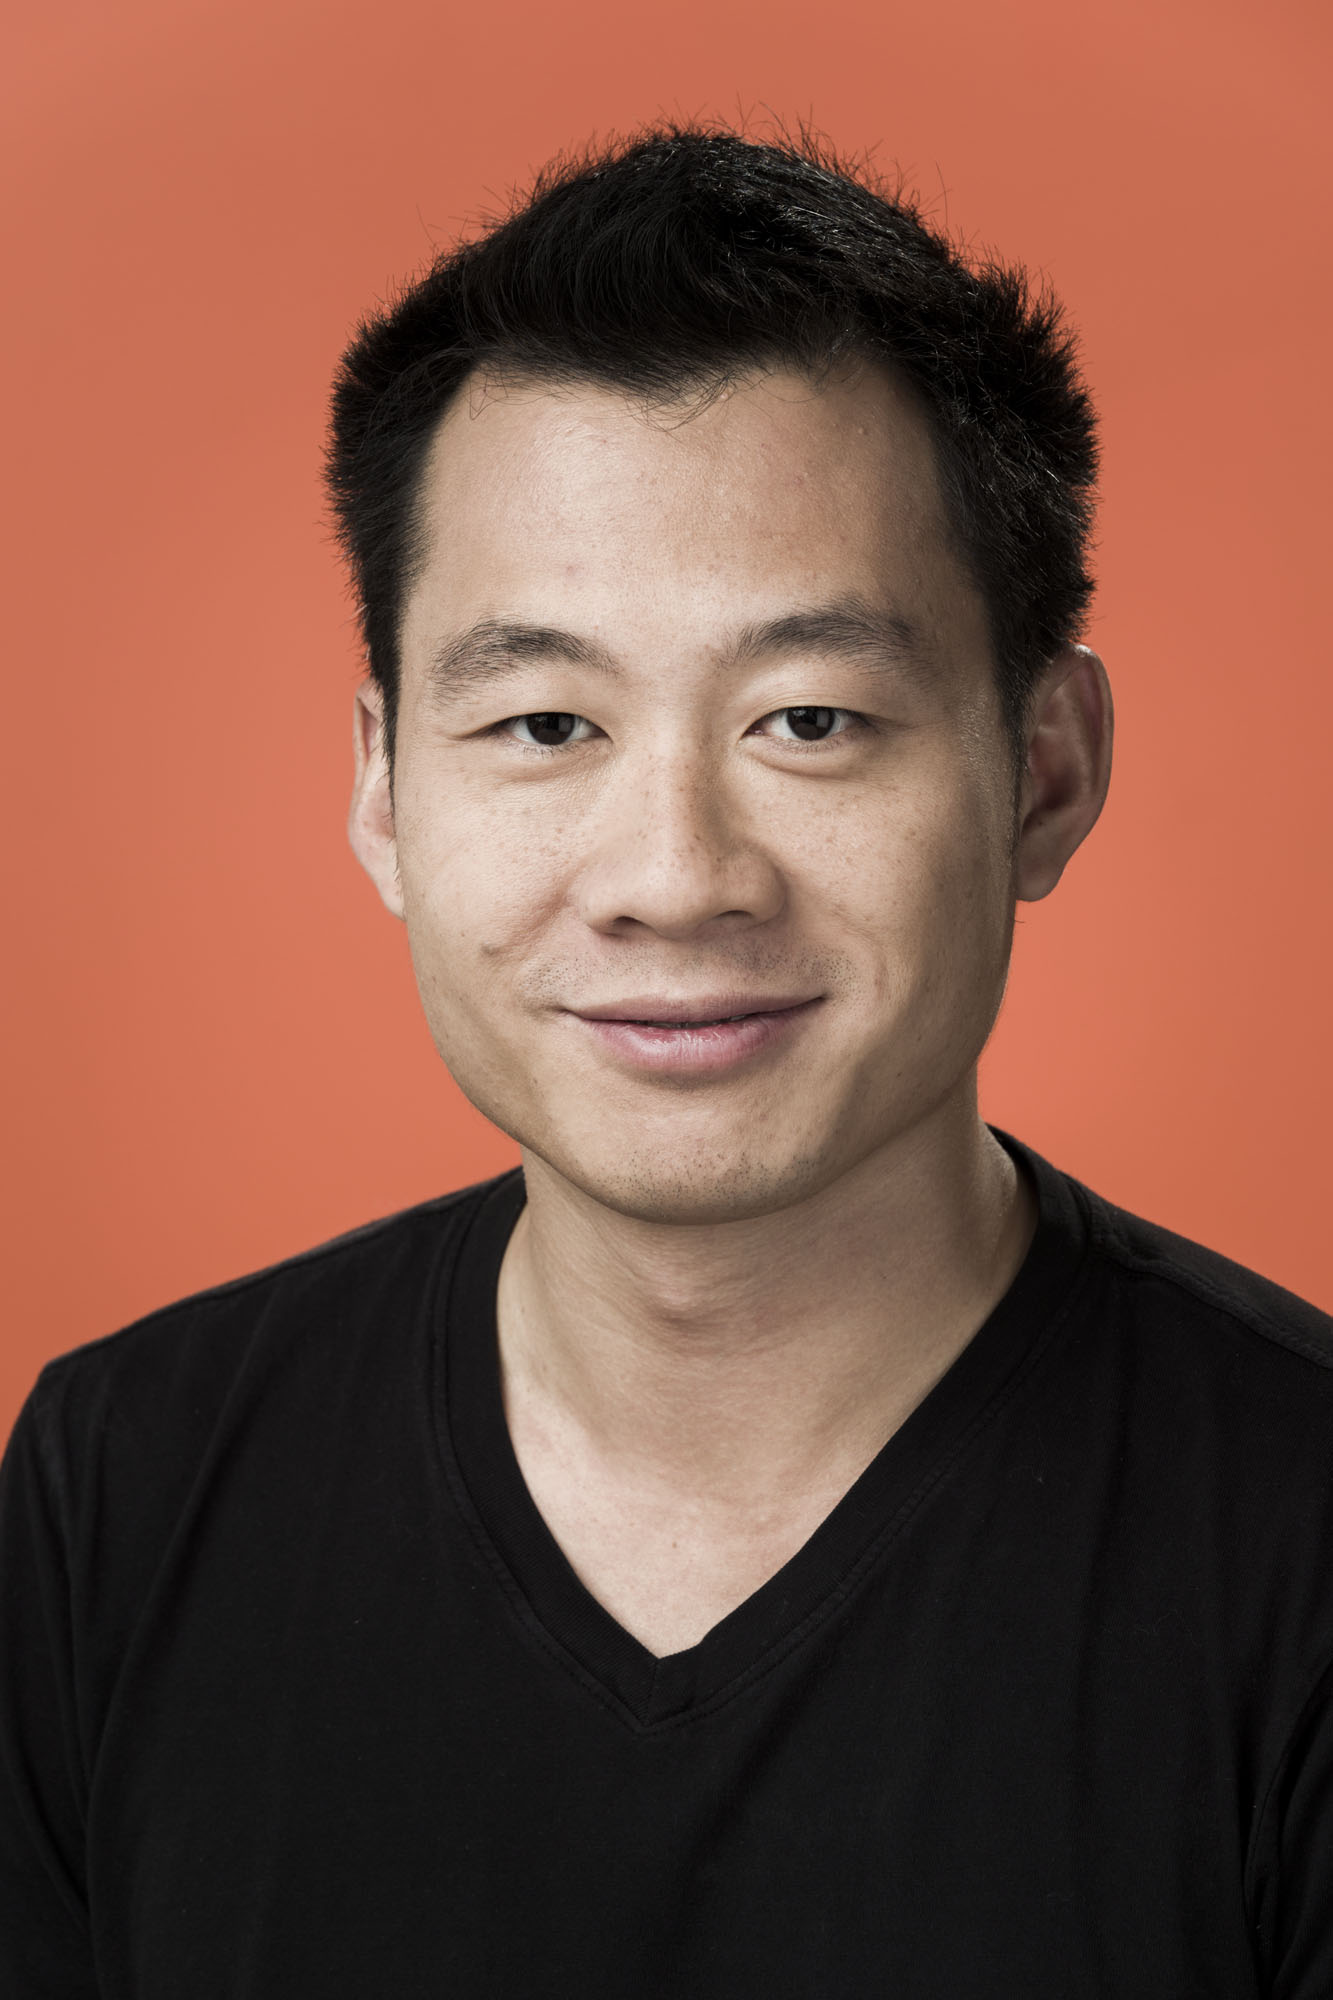 Entrepreneur Justin Kan co-founded Justin.tv and Twitch.tv.